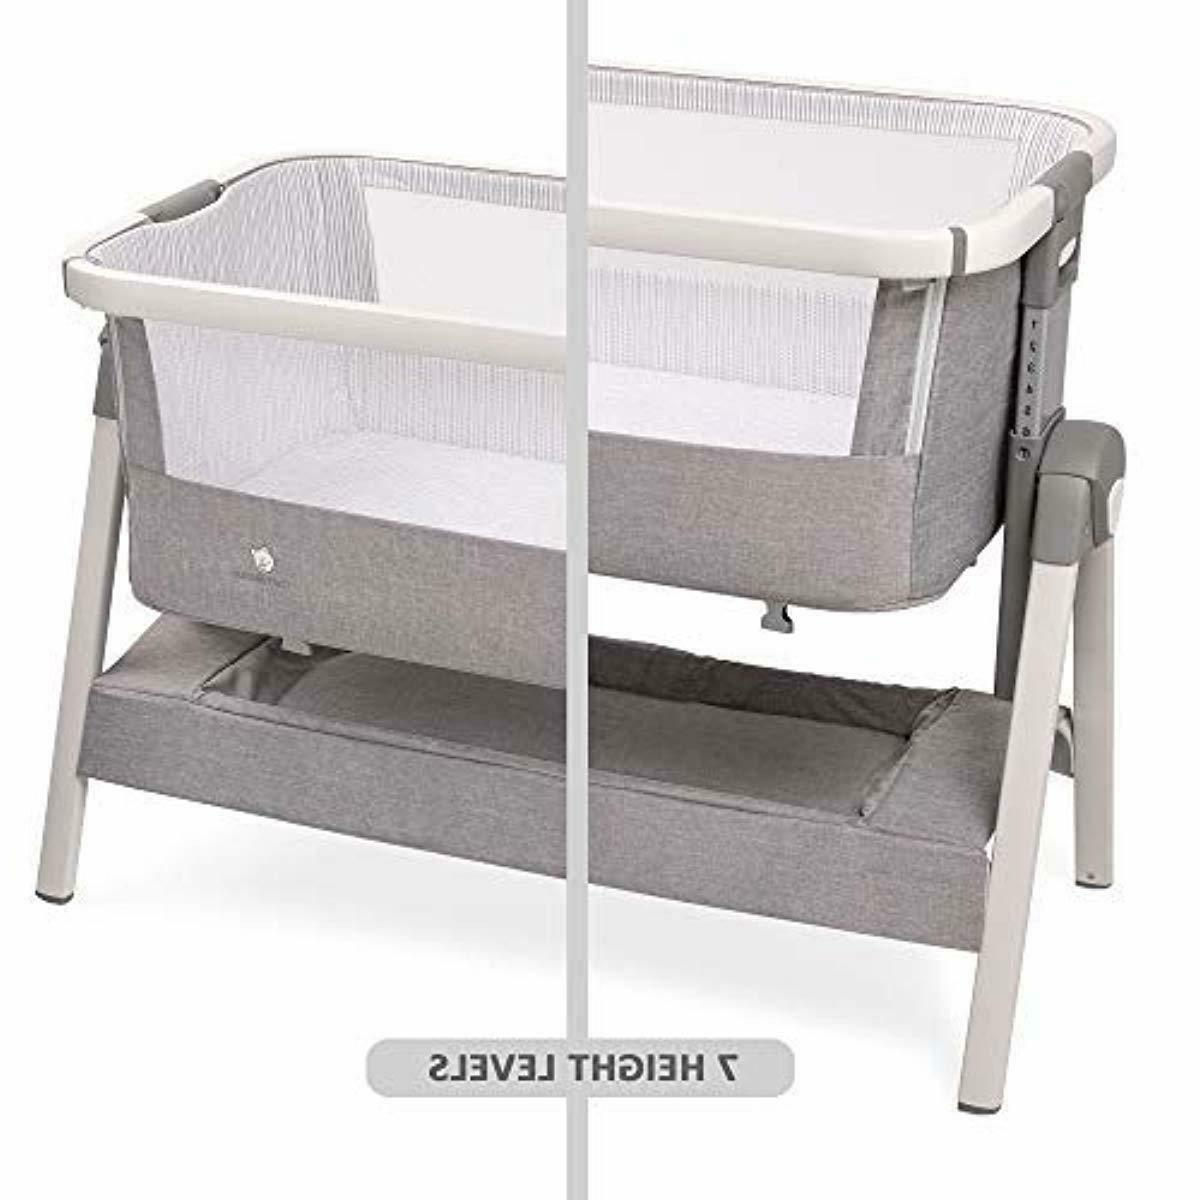 Bed for Baby - Includes Travel Sheet,